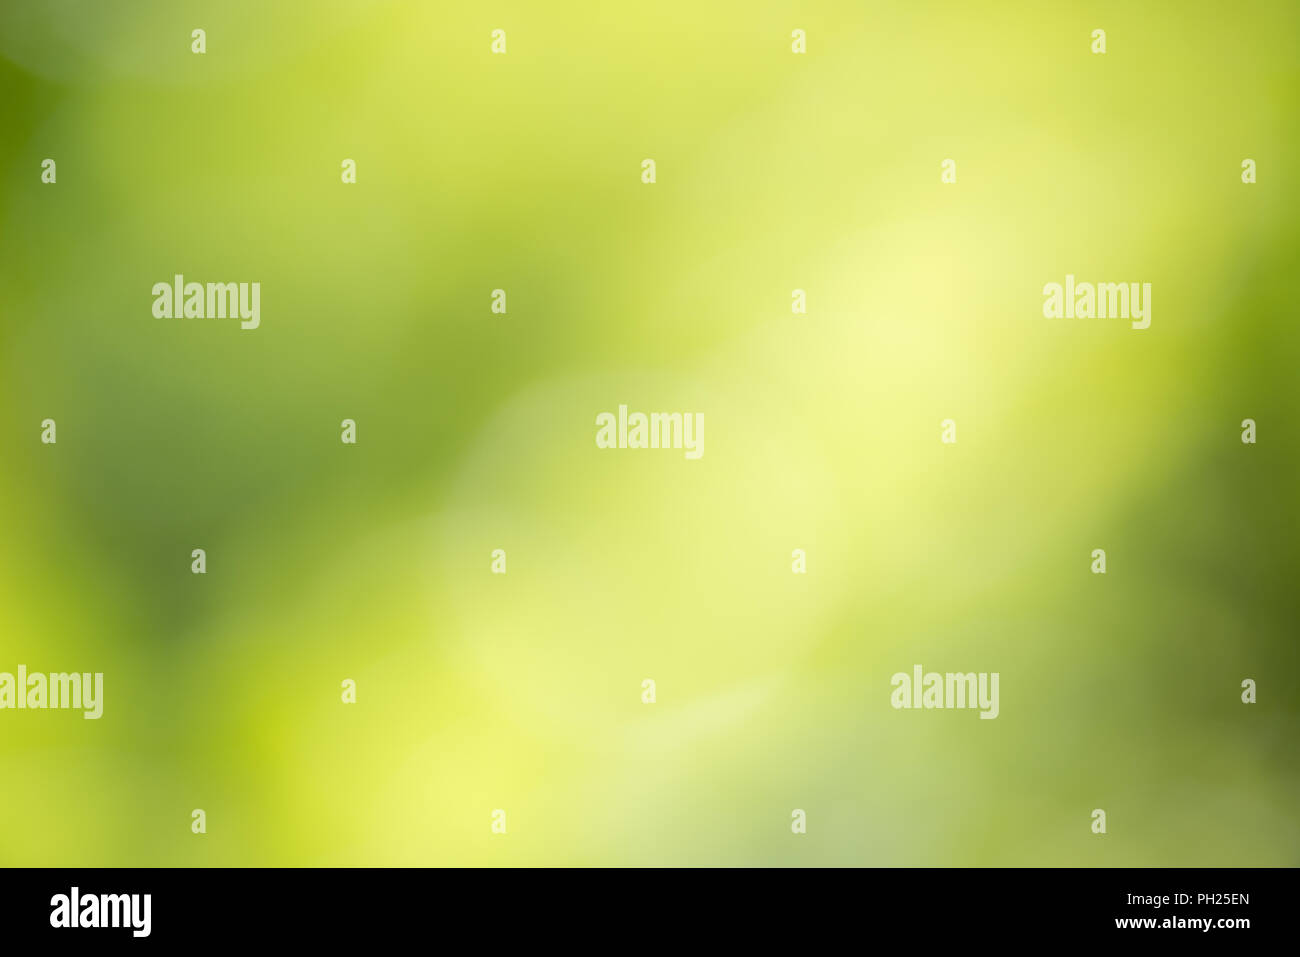 Dark Shades High Resolution Stock Photography And Images Alamy